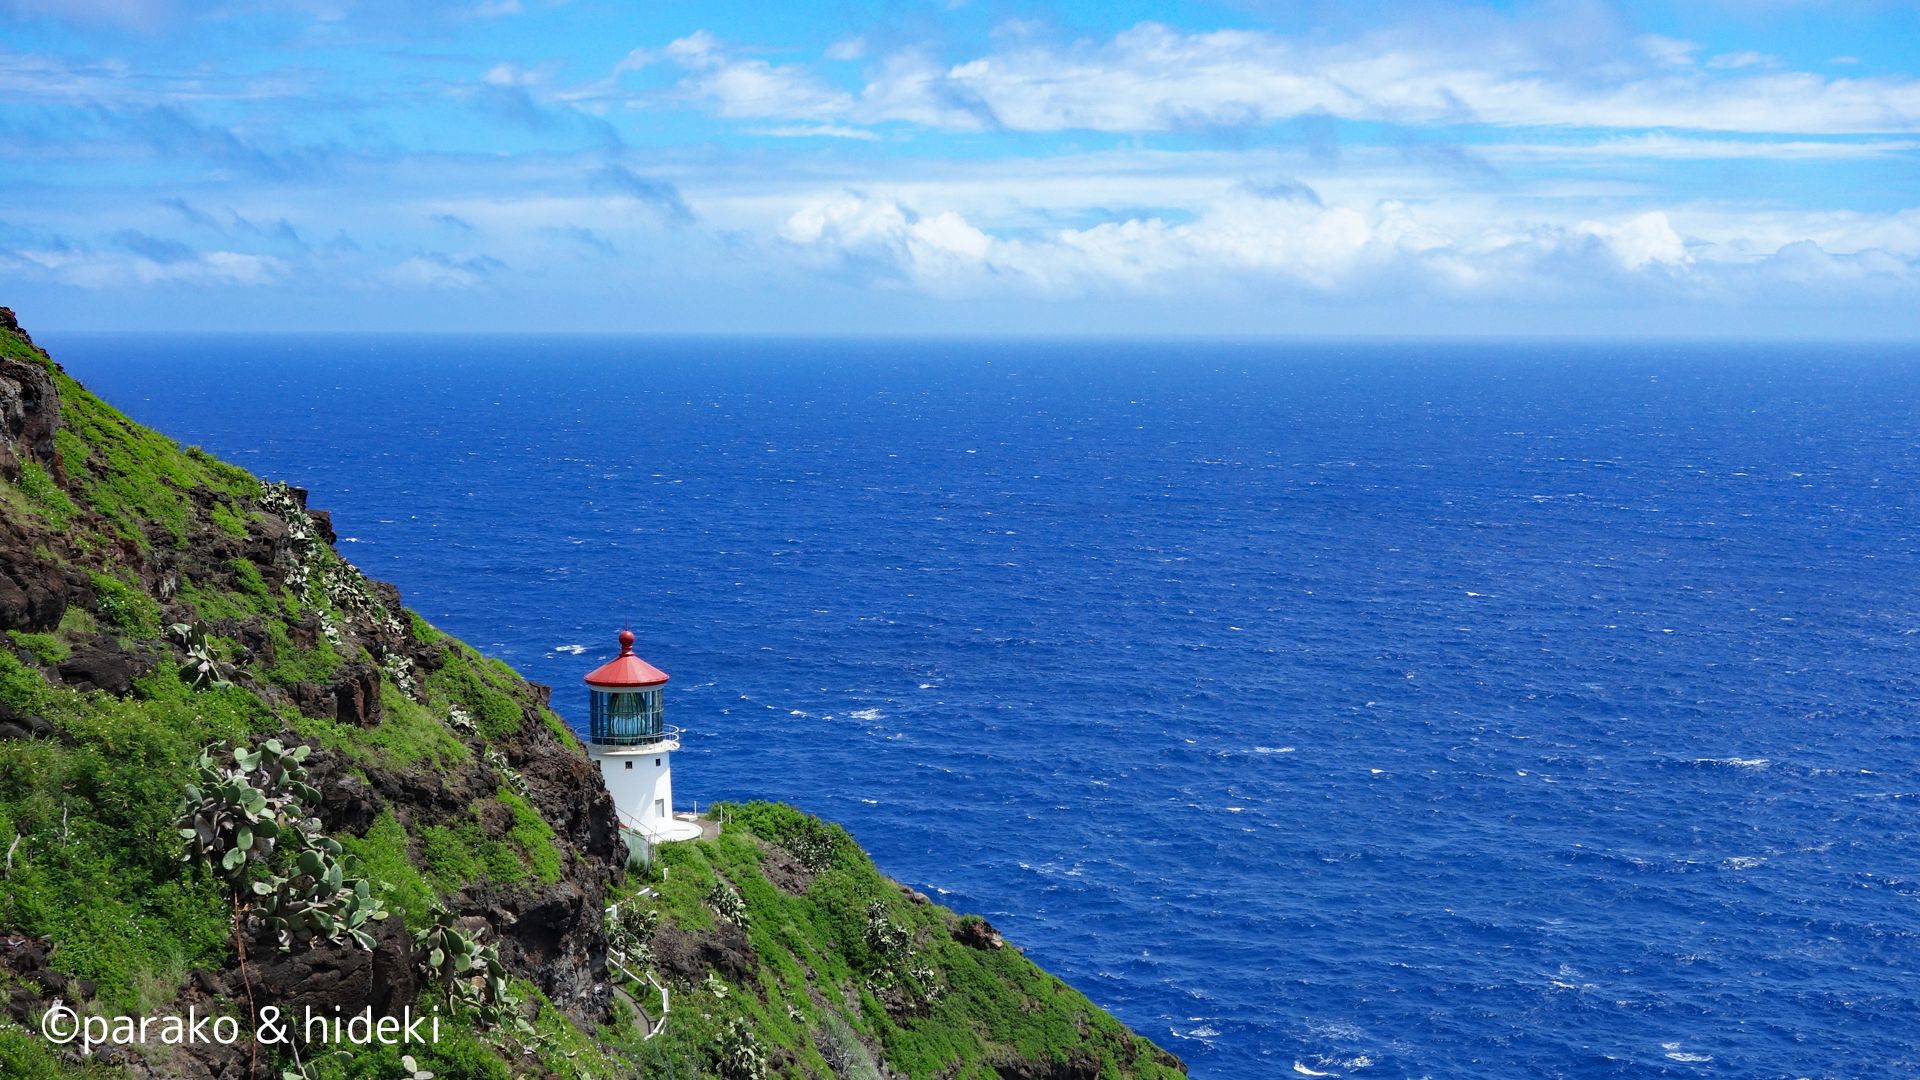 マカプウ灯台(Makapuu lighthouse)